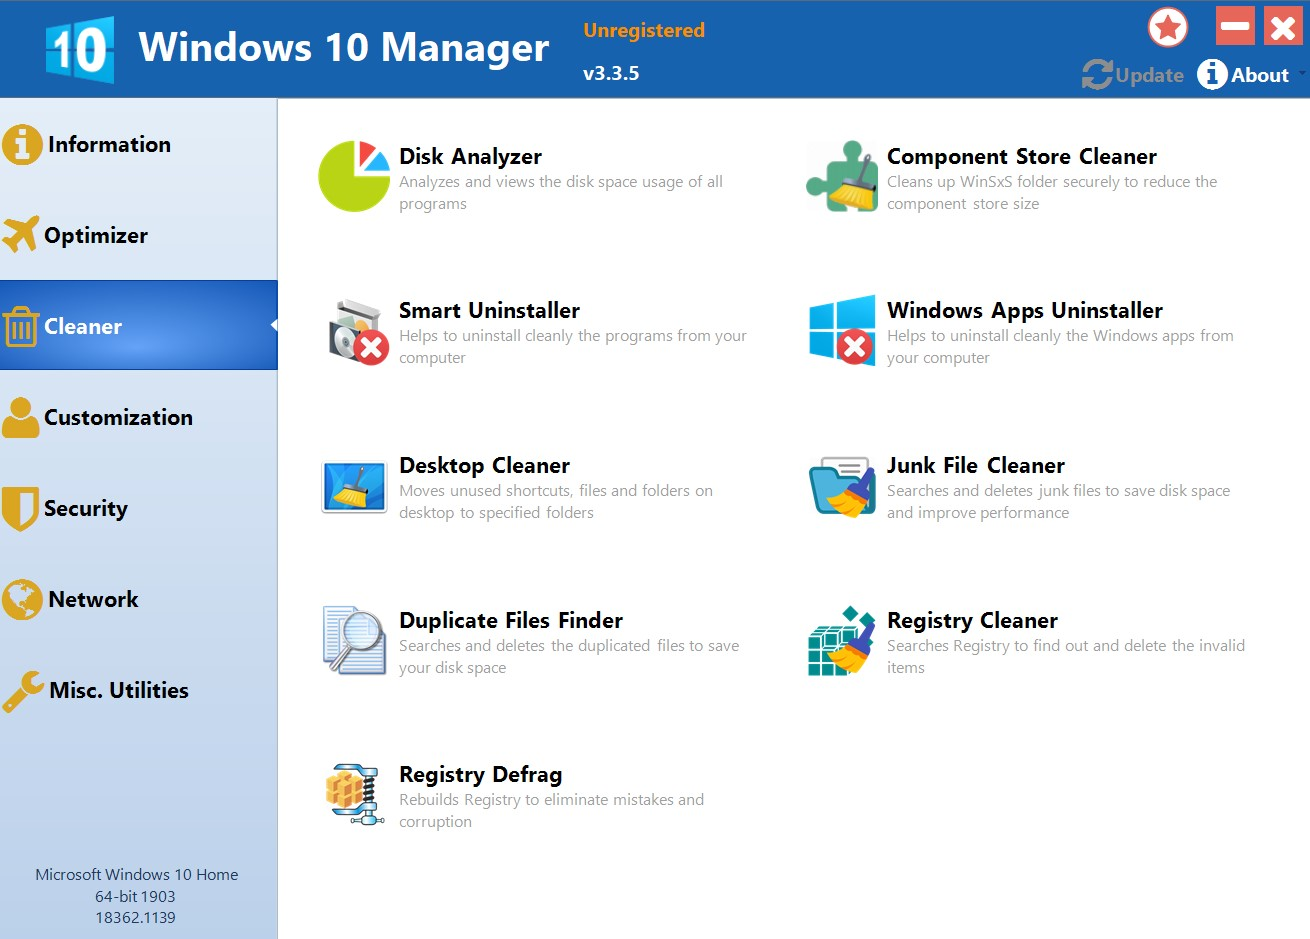 Windows 10 Manager for Windows